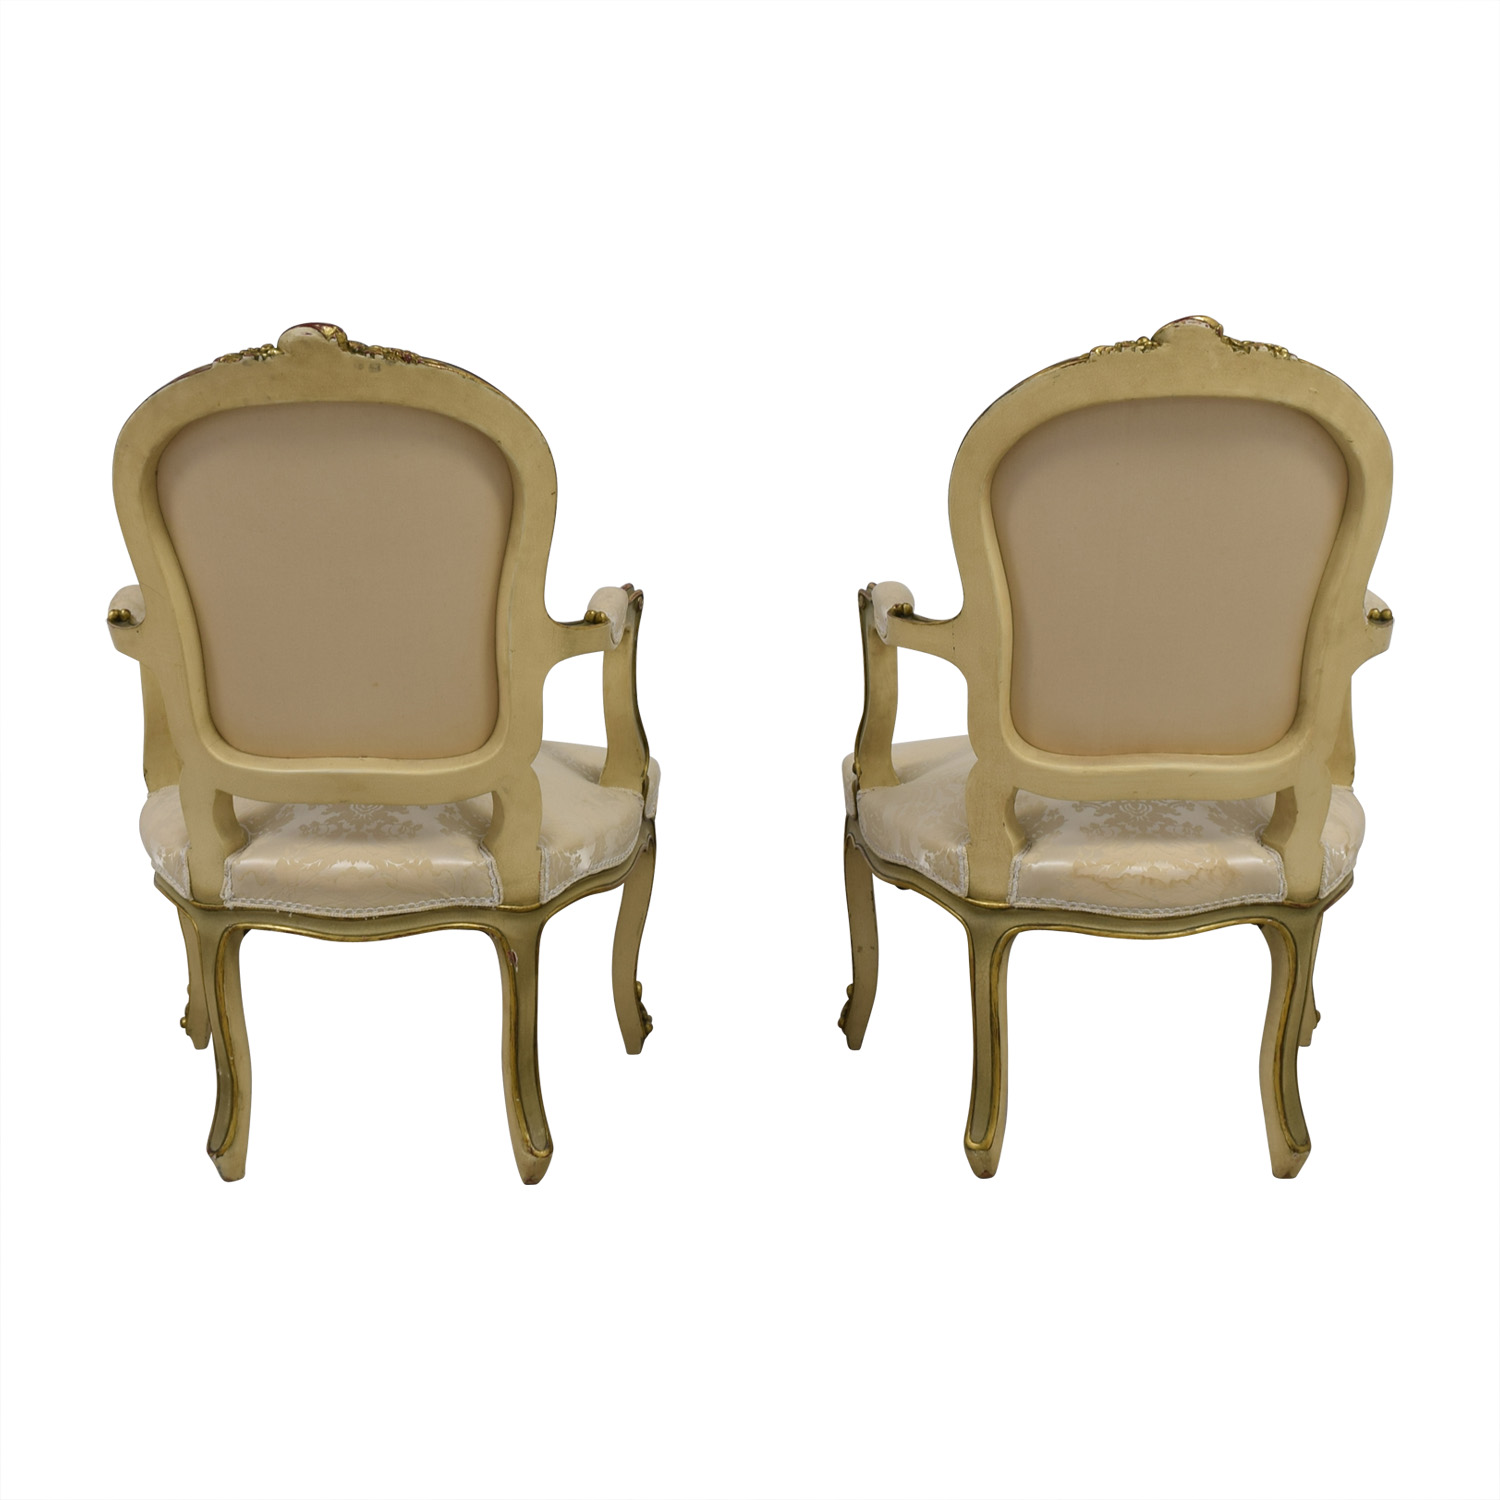 buy  Antique White Jacquard Upholstered Gold Arm Chairs online